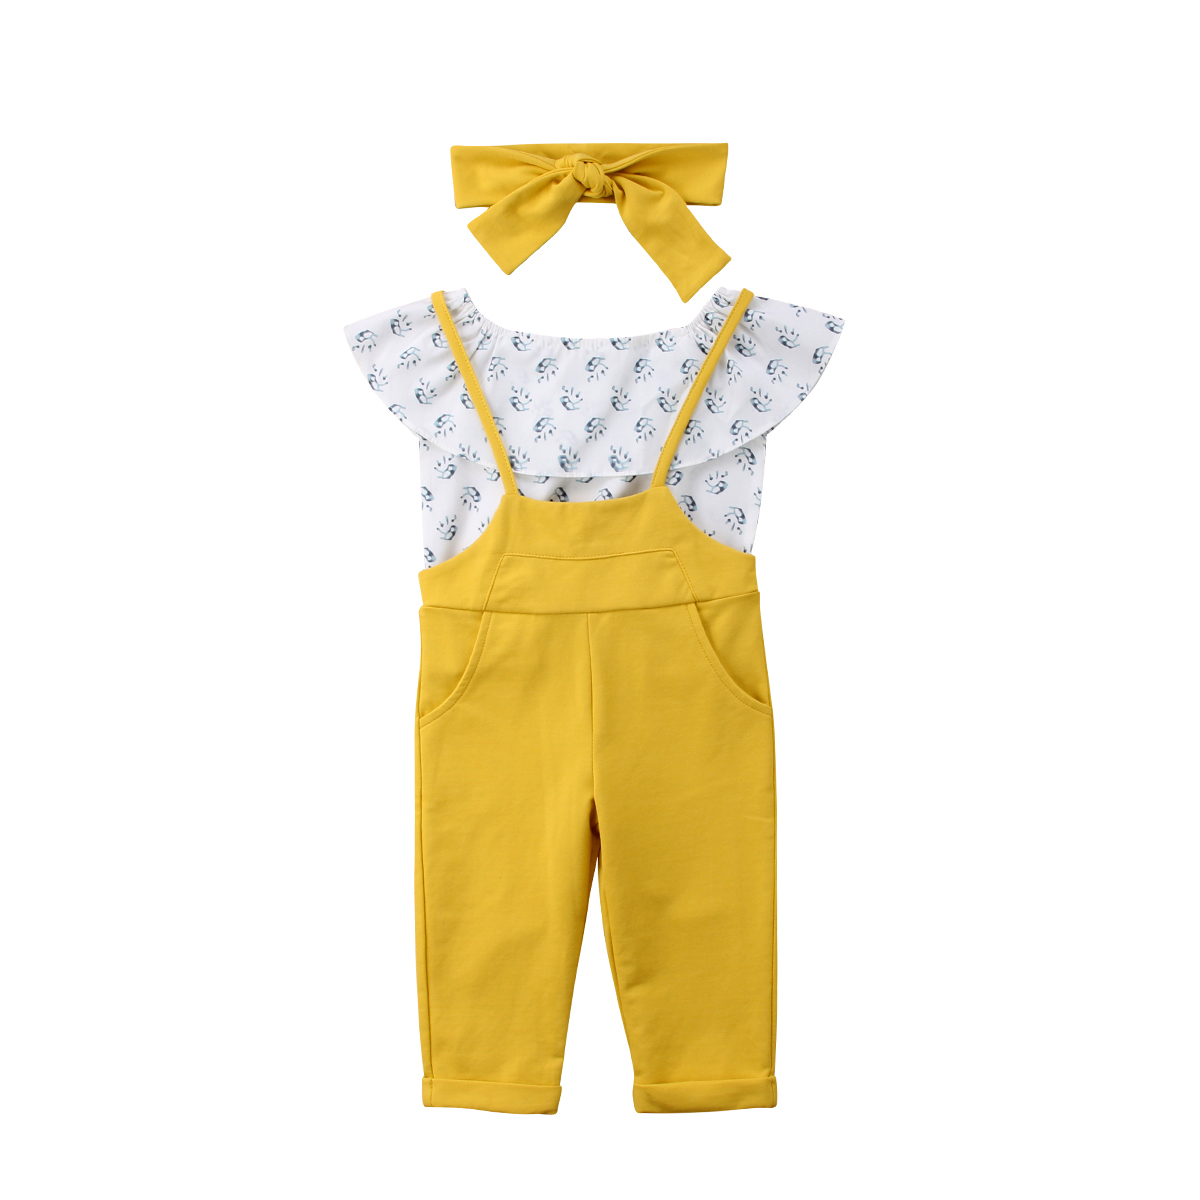 3PCS Toddler Kids Baby Girls Ruffles Flower Tops+Overalls Pants+Headband Outfits Clothes Set